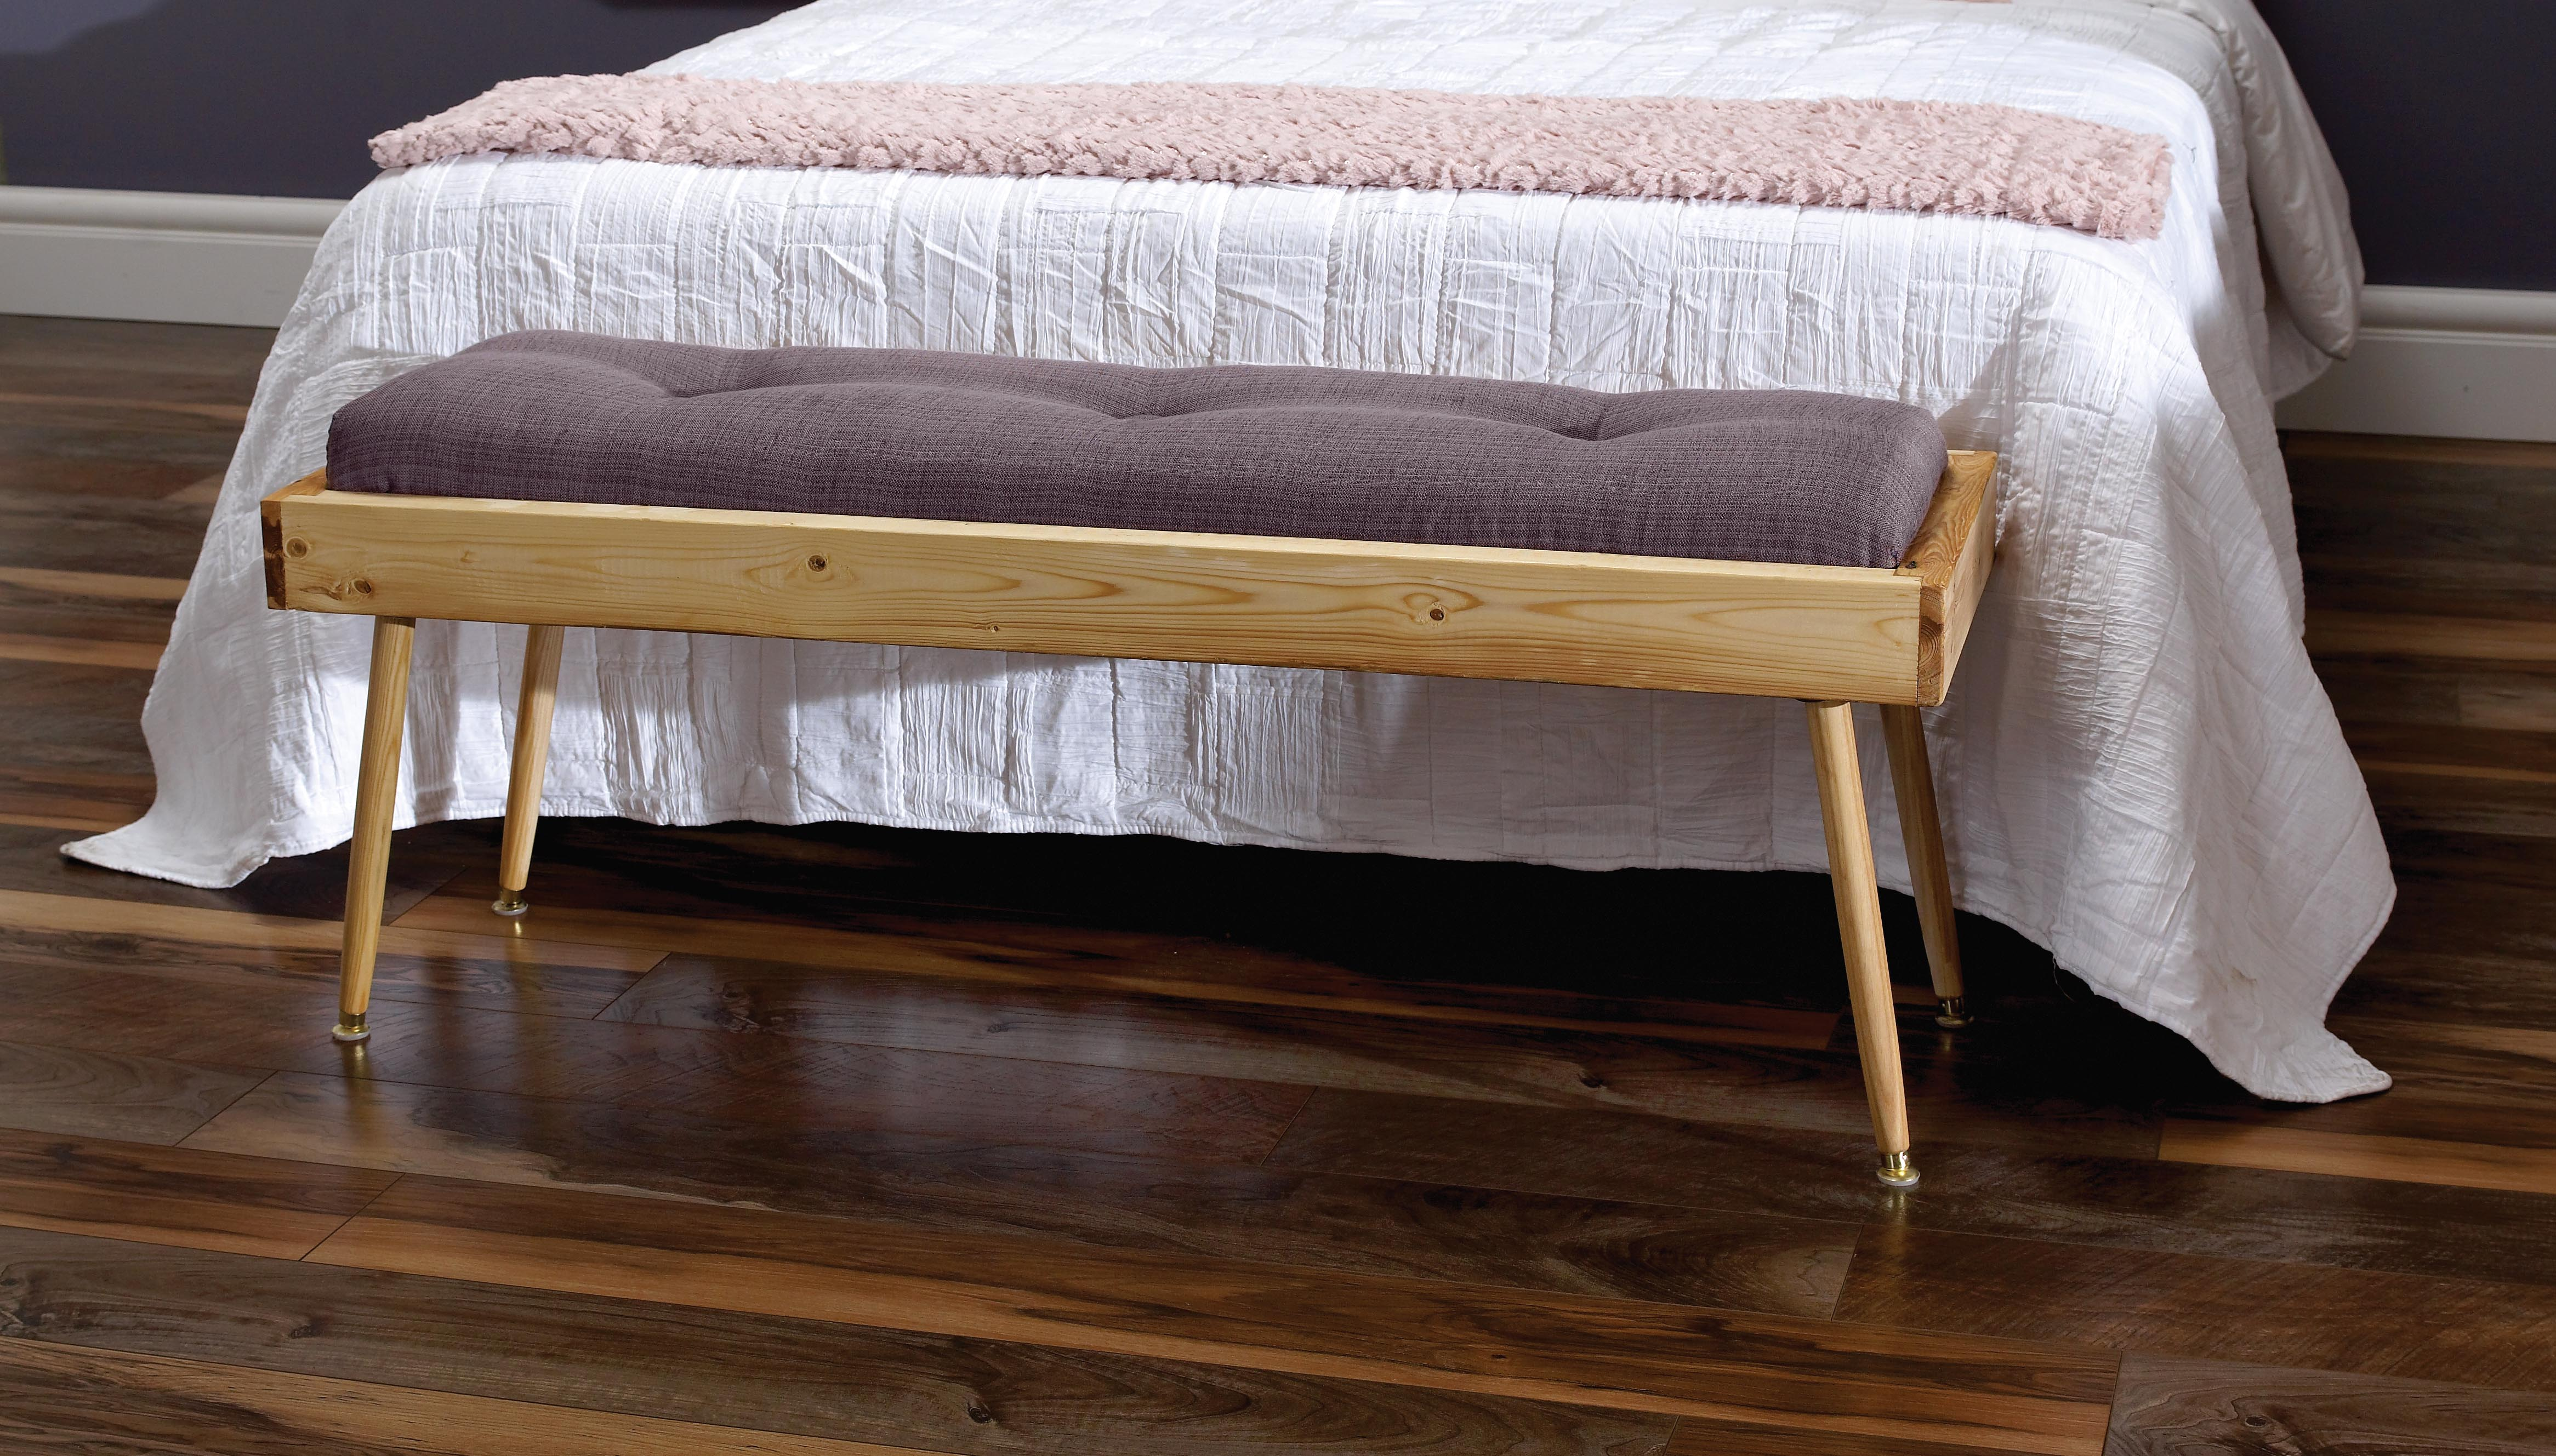 bedroombench